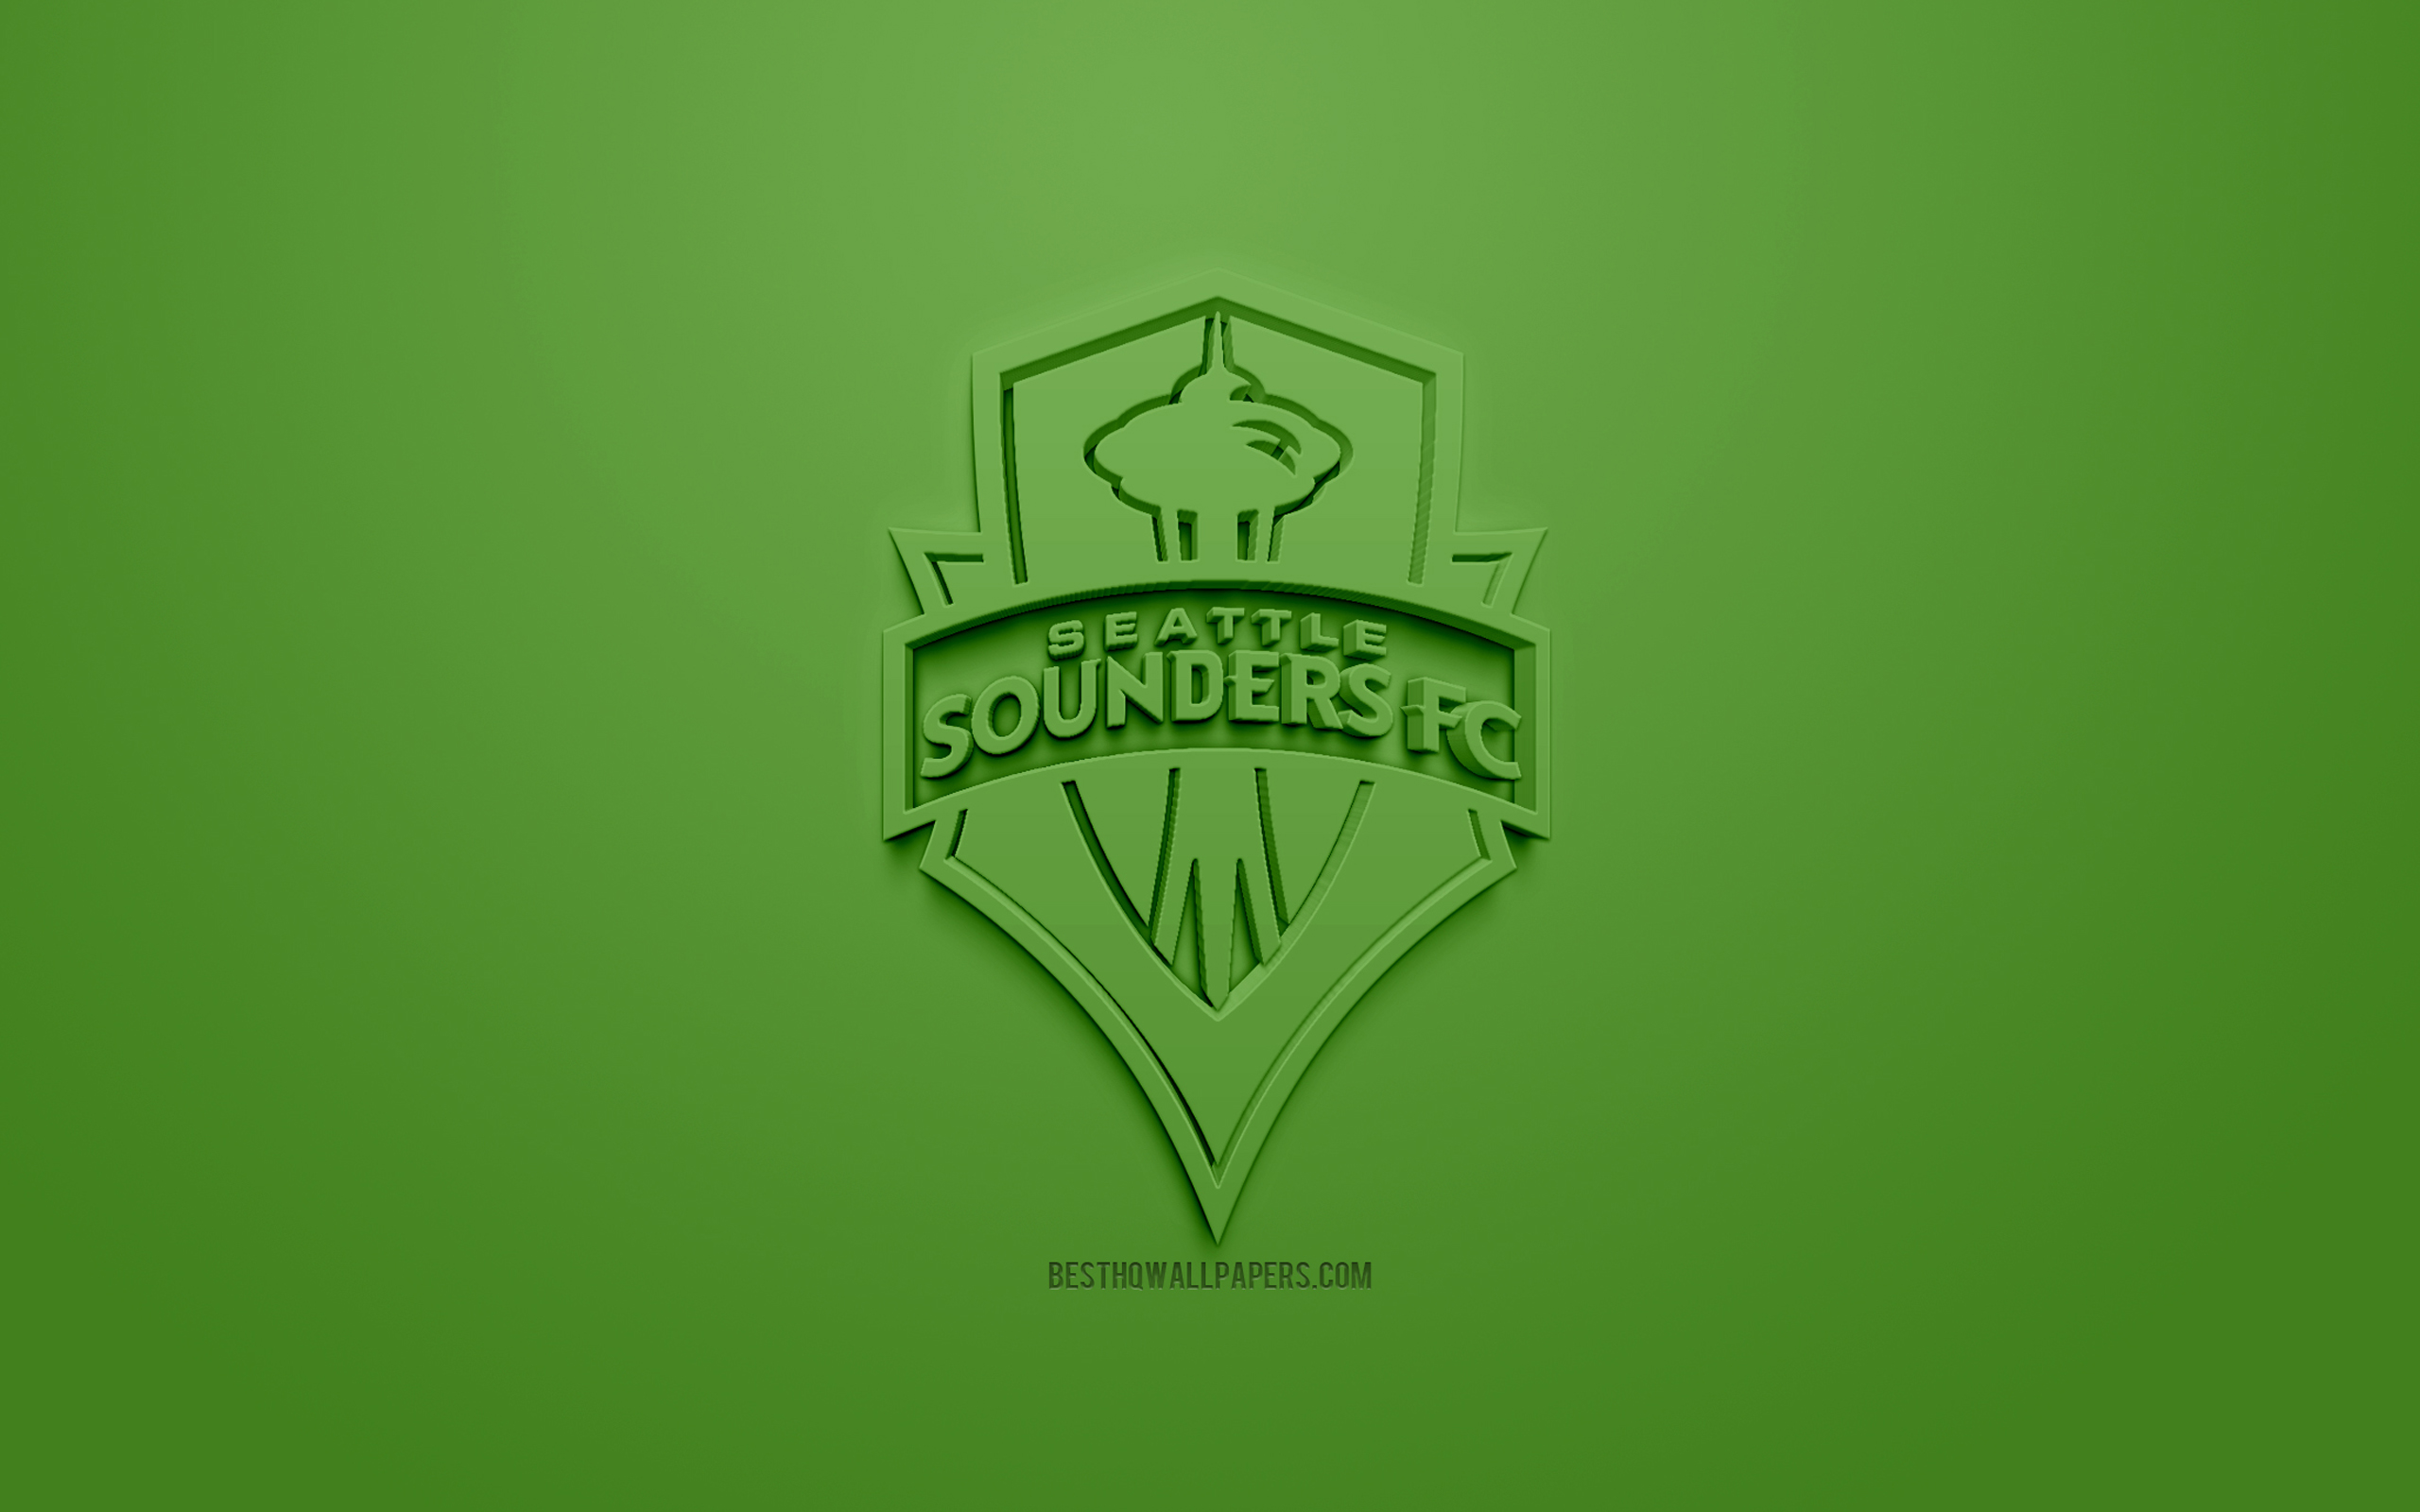 Download wallpapers Seattle Sounders FC creative 3D logo green 2560x1600